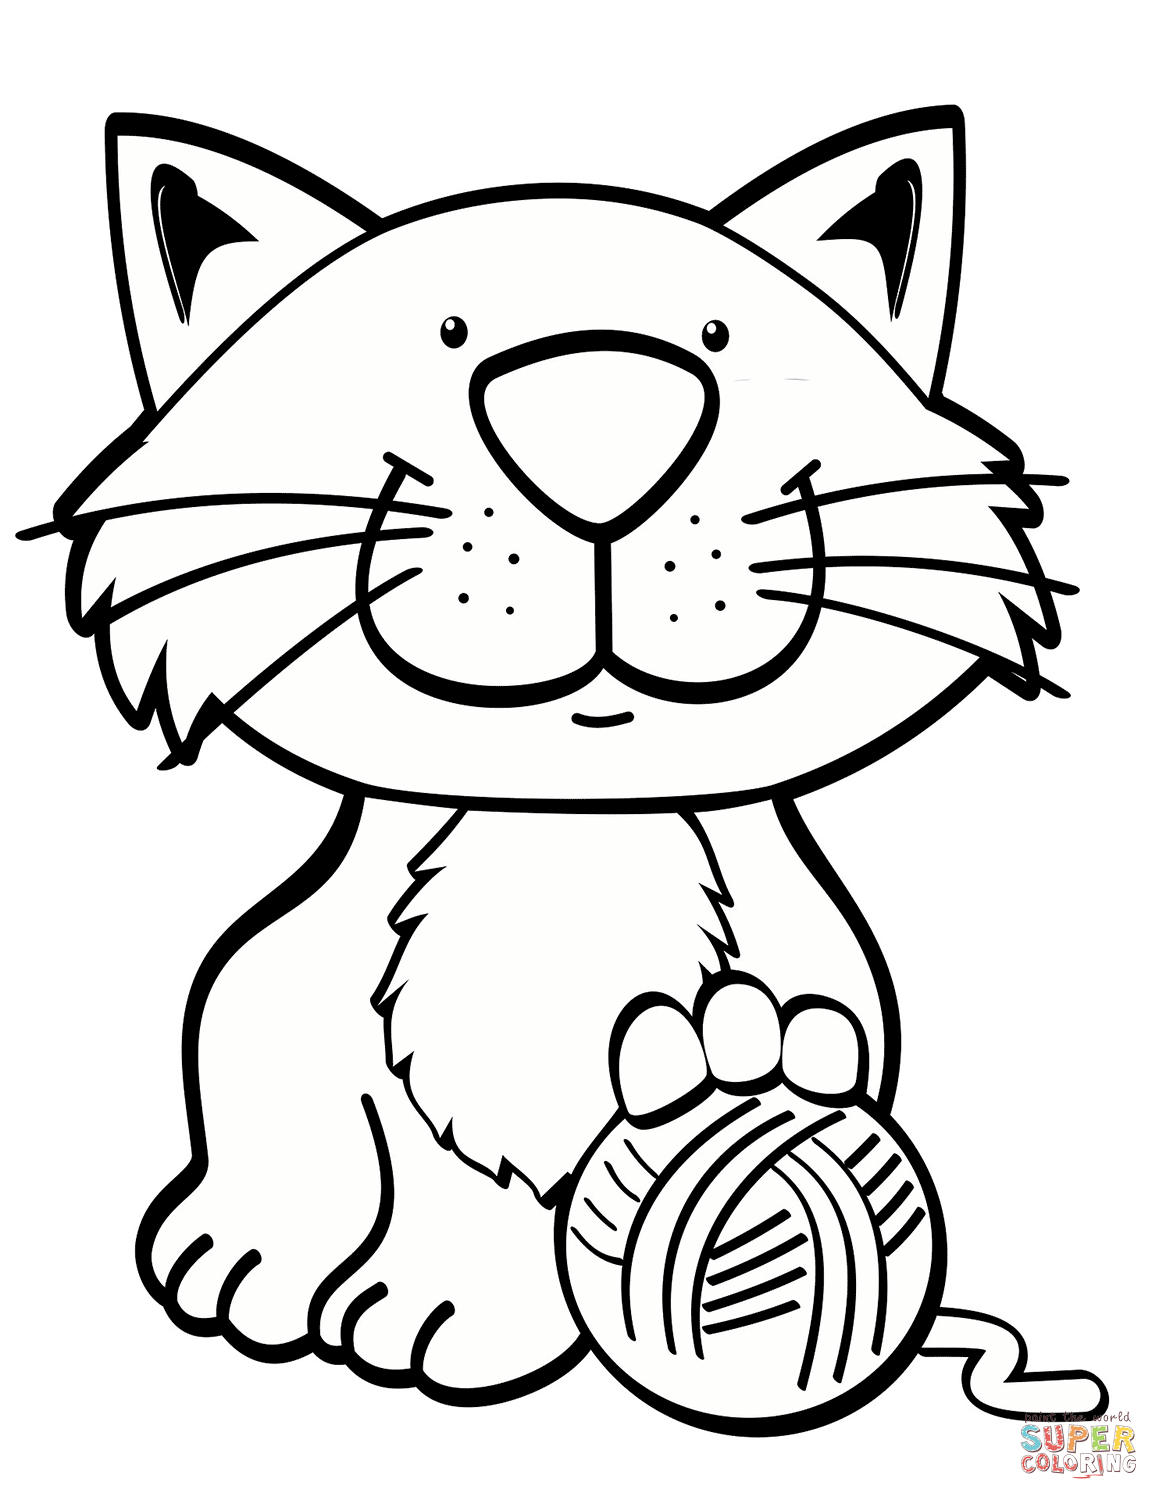 Cat With Yarn Ball Coloring Page Free Printable Coloring Pages